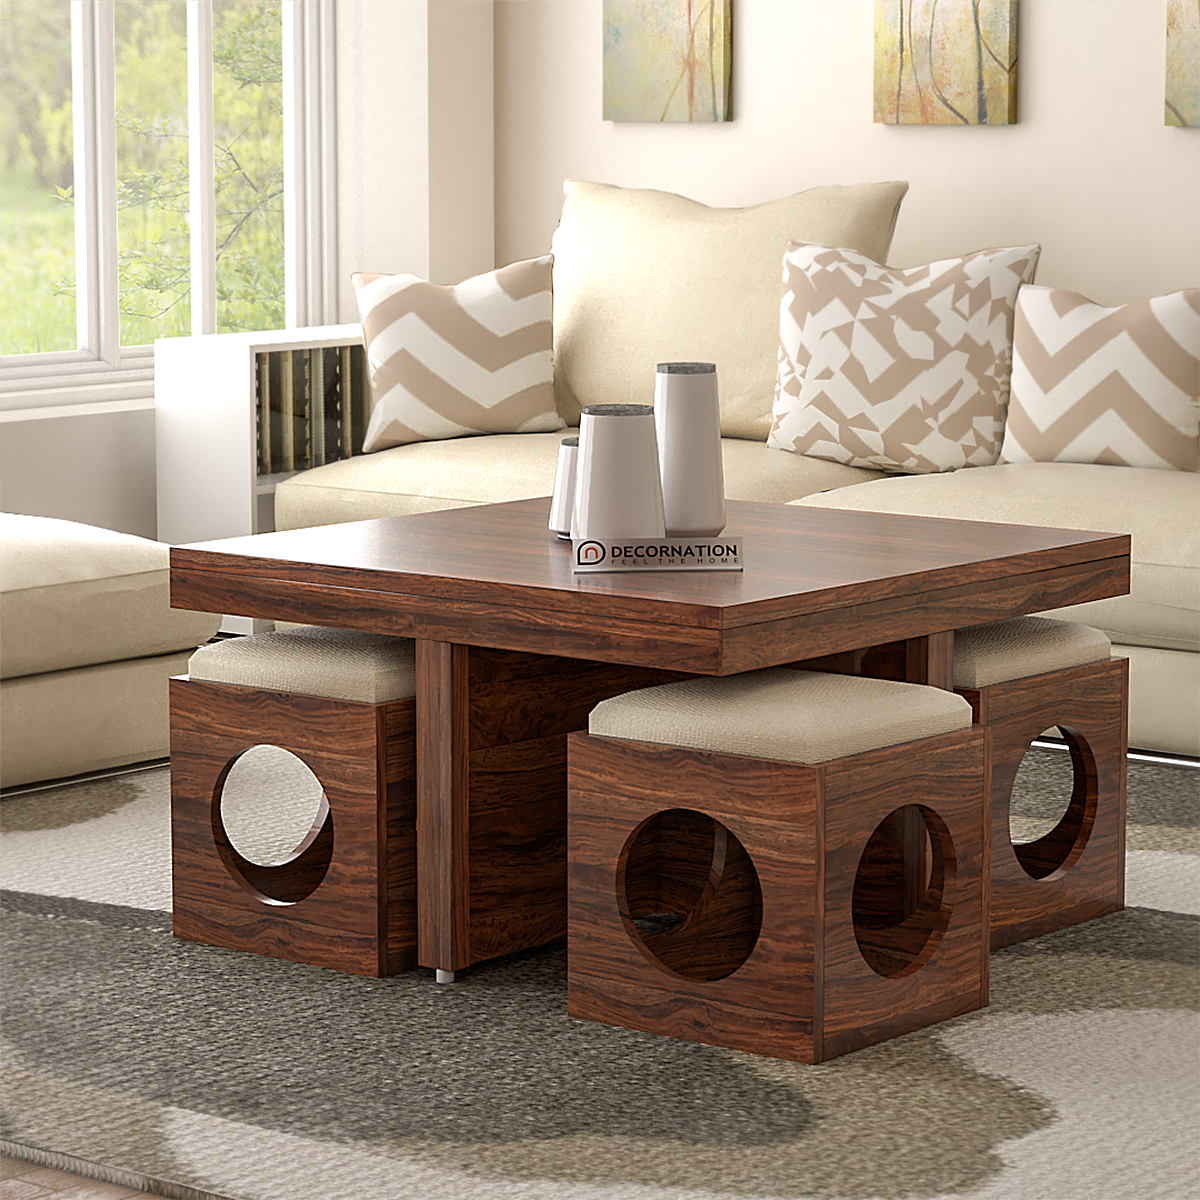 Belfast Wooden Coffee Table With 4 Stools Brown Decornation